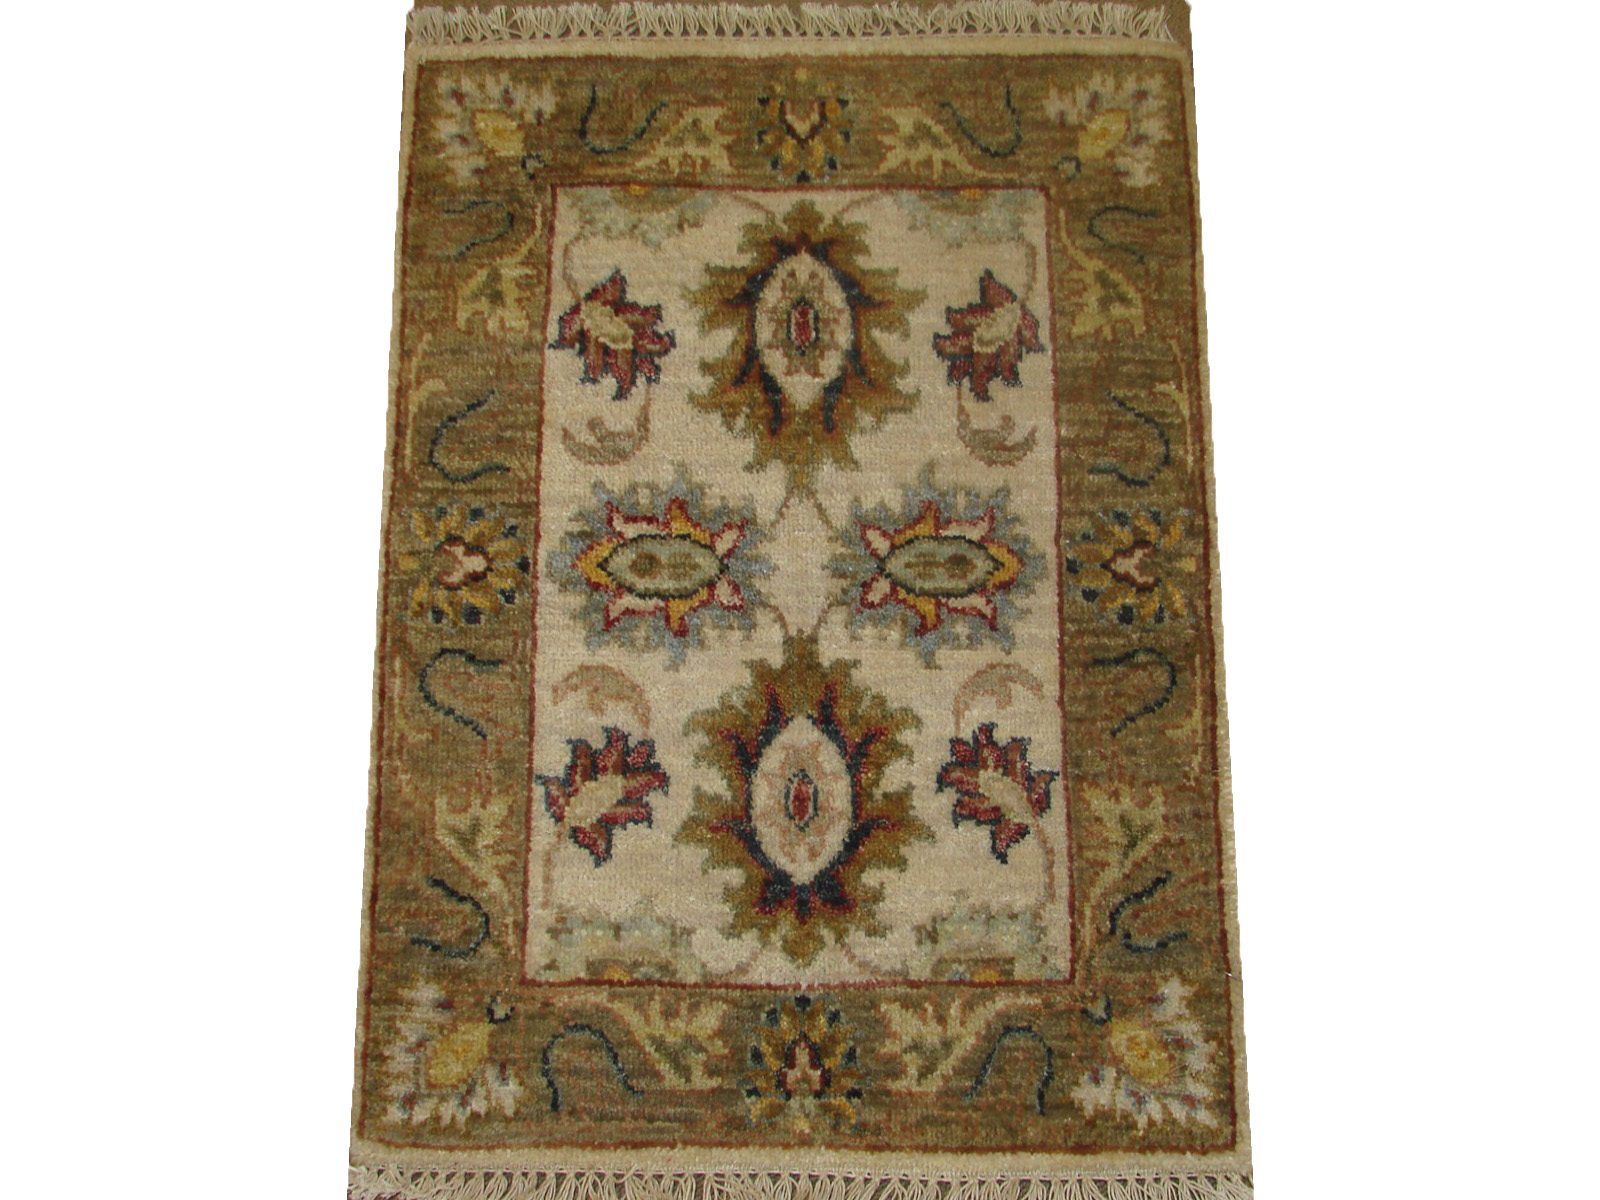 1.6X2 & SMALLER Traditional Hand Knotted Wool Area Rug - MR21099